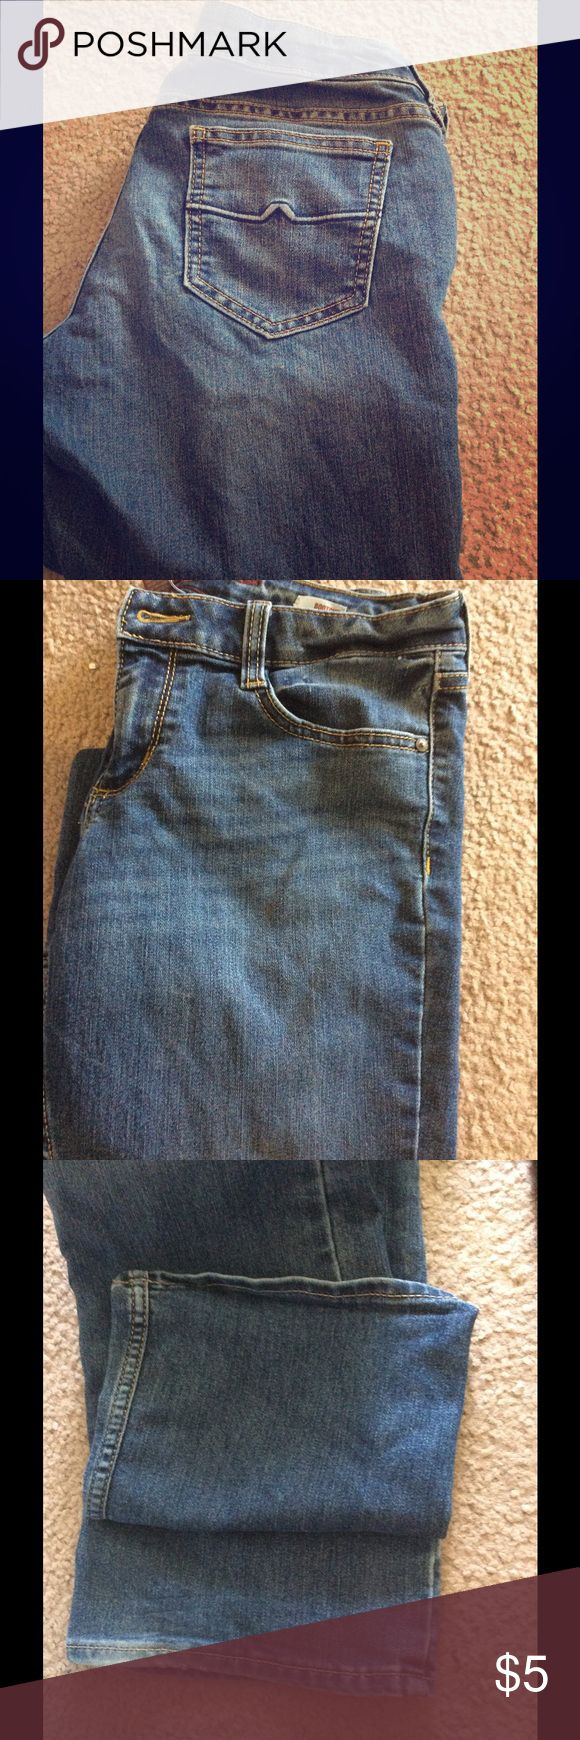 Arizona jeans, size 7 Regular length jeans, very basic with nothing flashy on them. Some wear on very bottoms of legs, as shown in picture. Very comfy, almost stretchy material. Arizona Jean Company Jeans Boot Cut